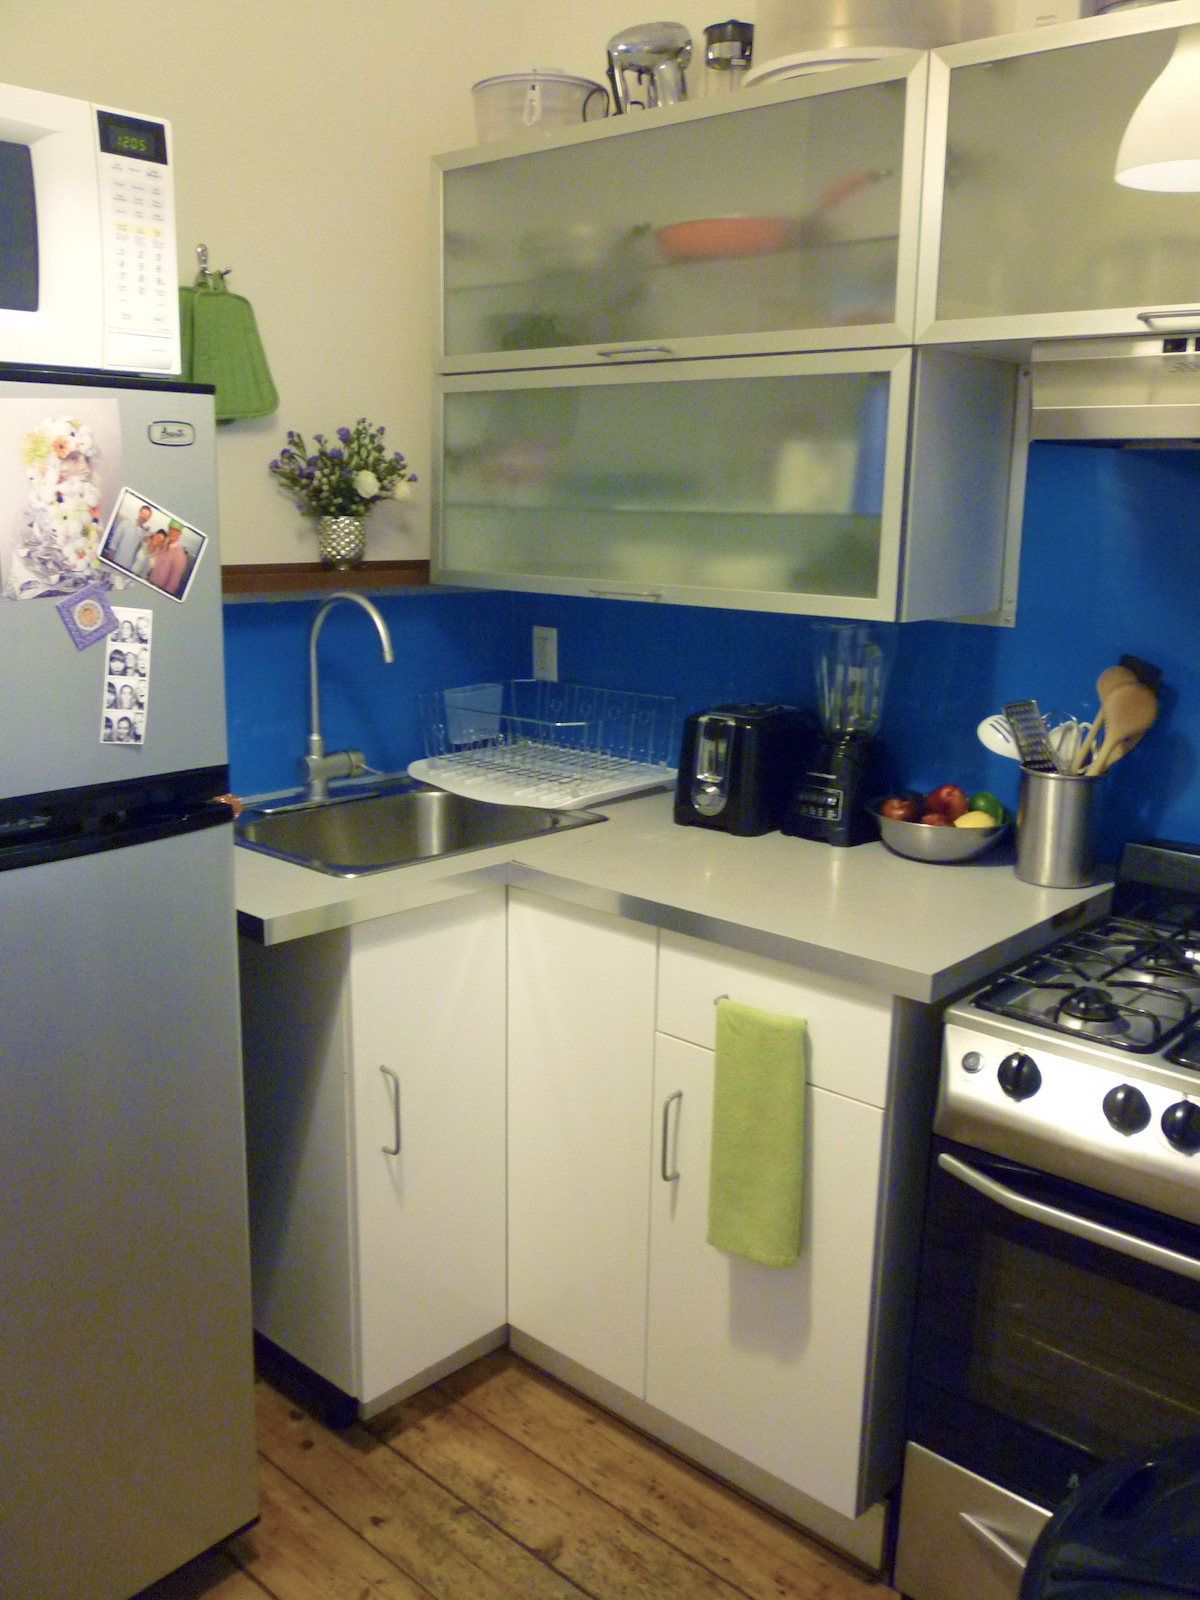 The tidy, functional kitchen which is directly adjacent to the bedroom.